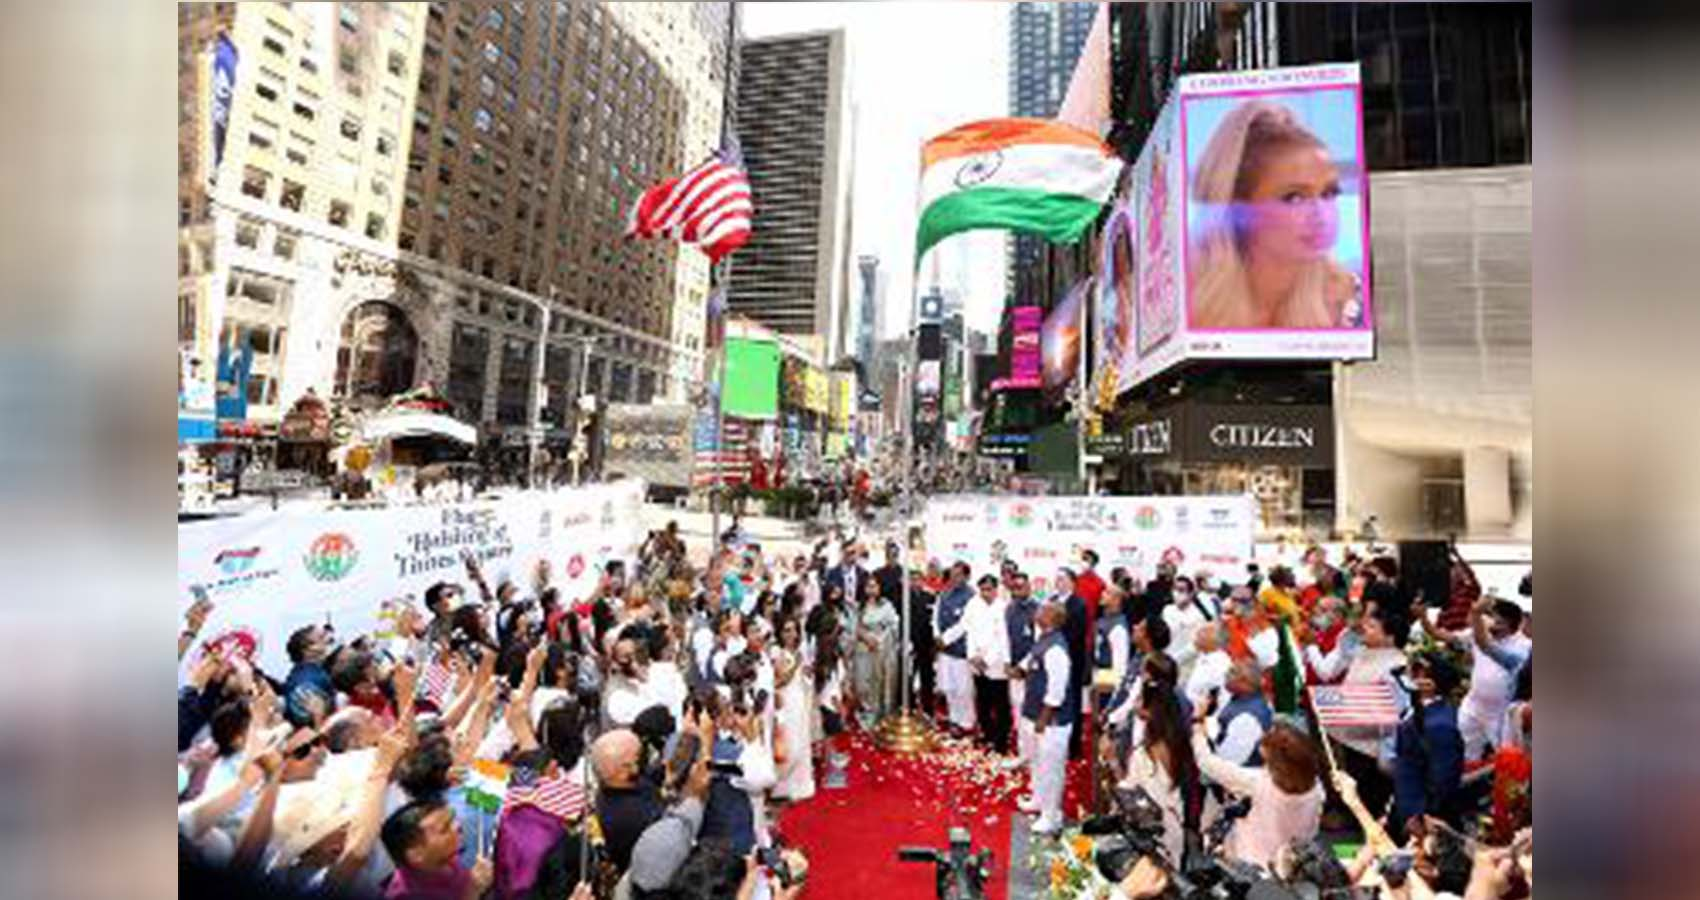 India's Tricolor At Times Square To Celebrate India's 75th Independence Day